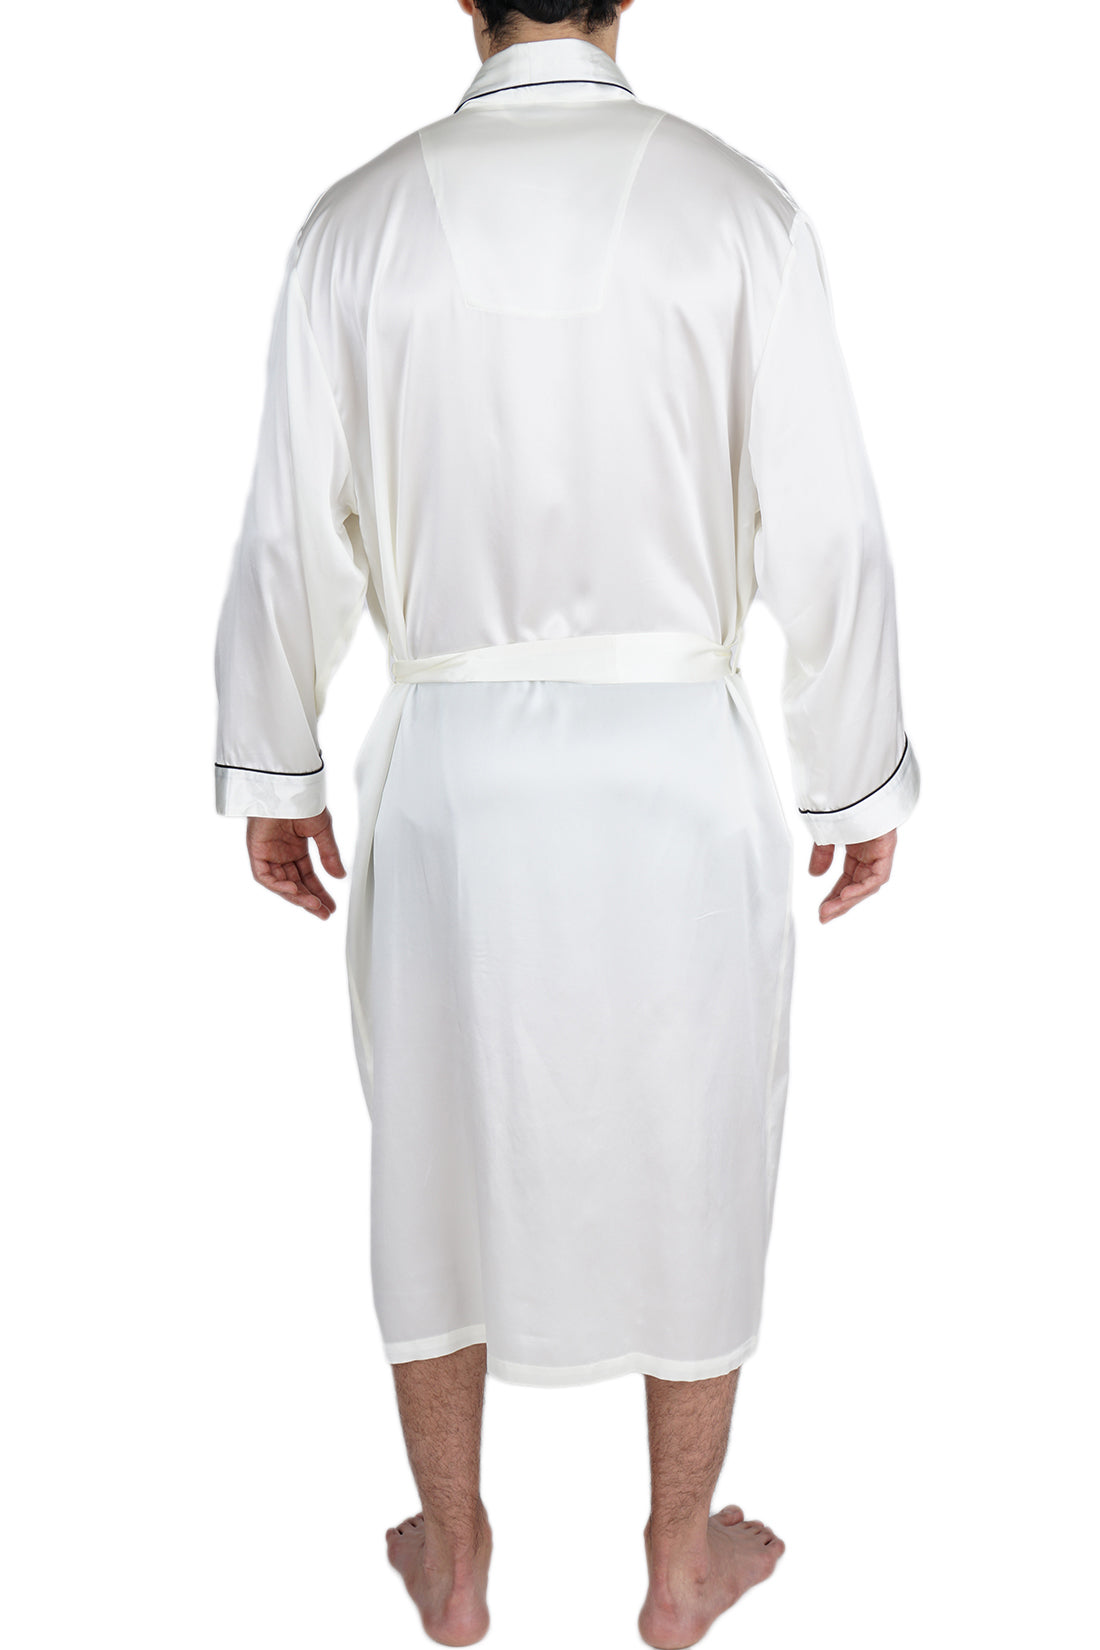 Men's Silk Sleepwear 100% Silk Long Robe